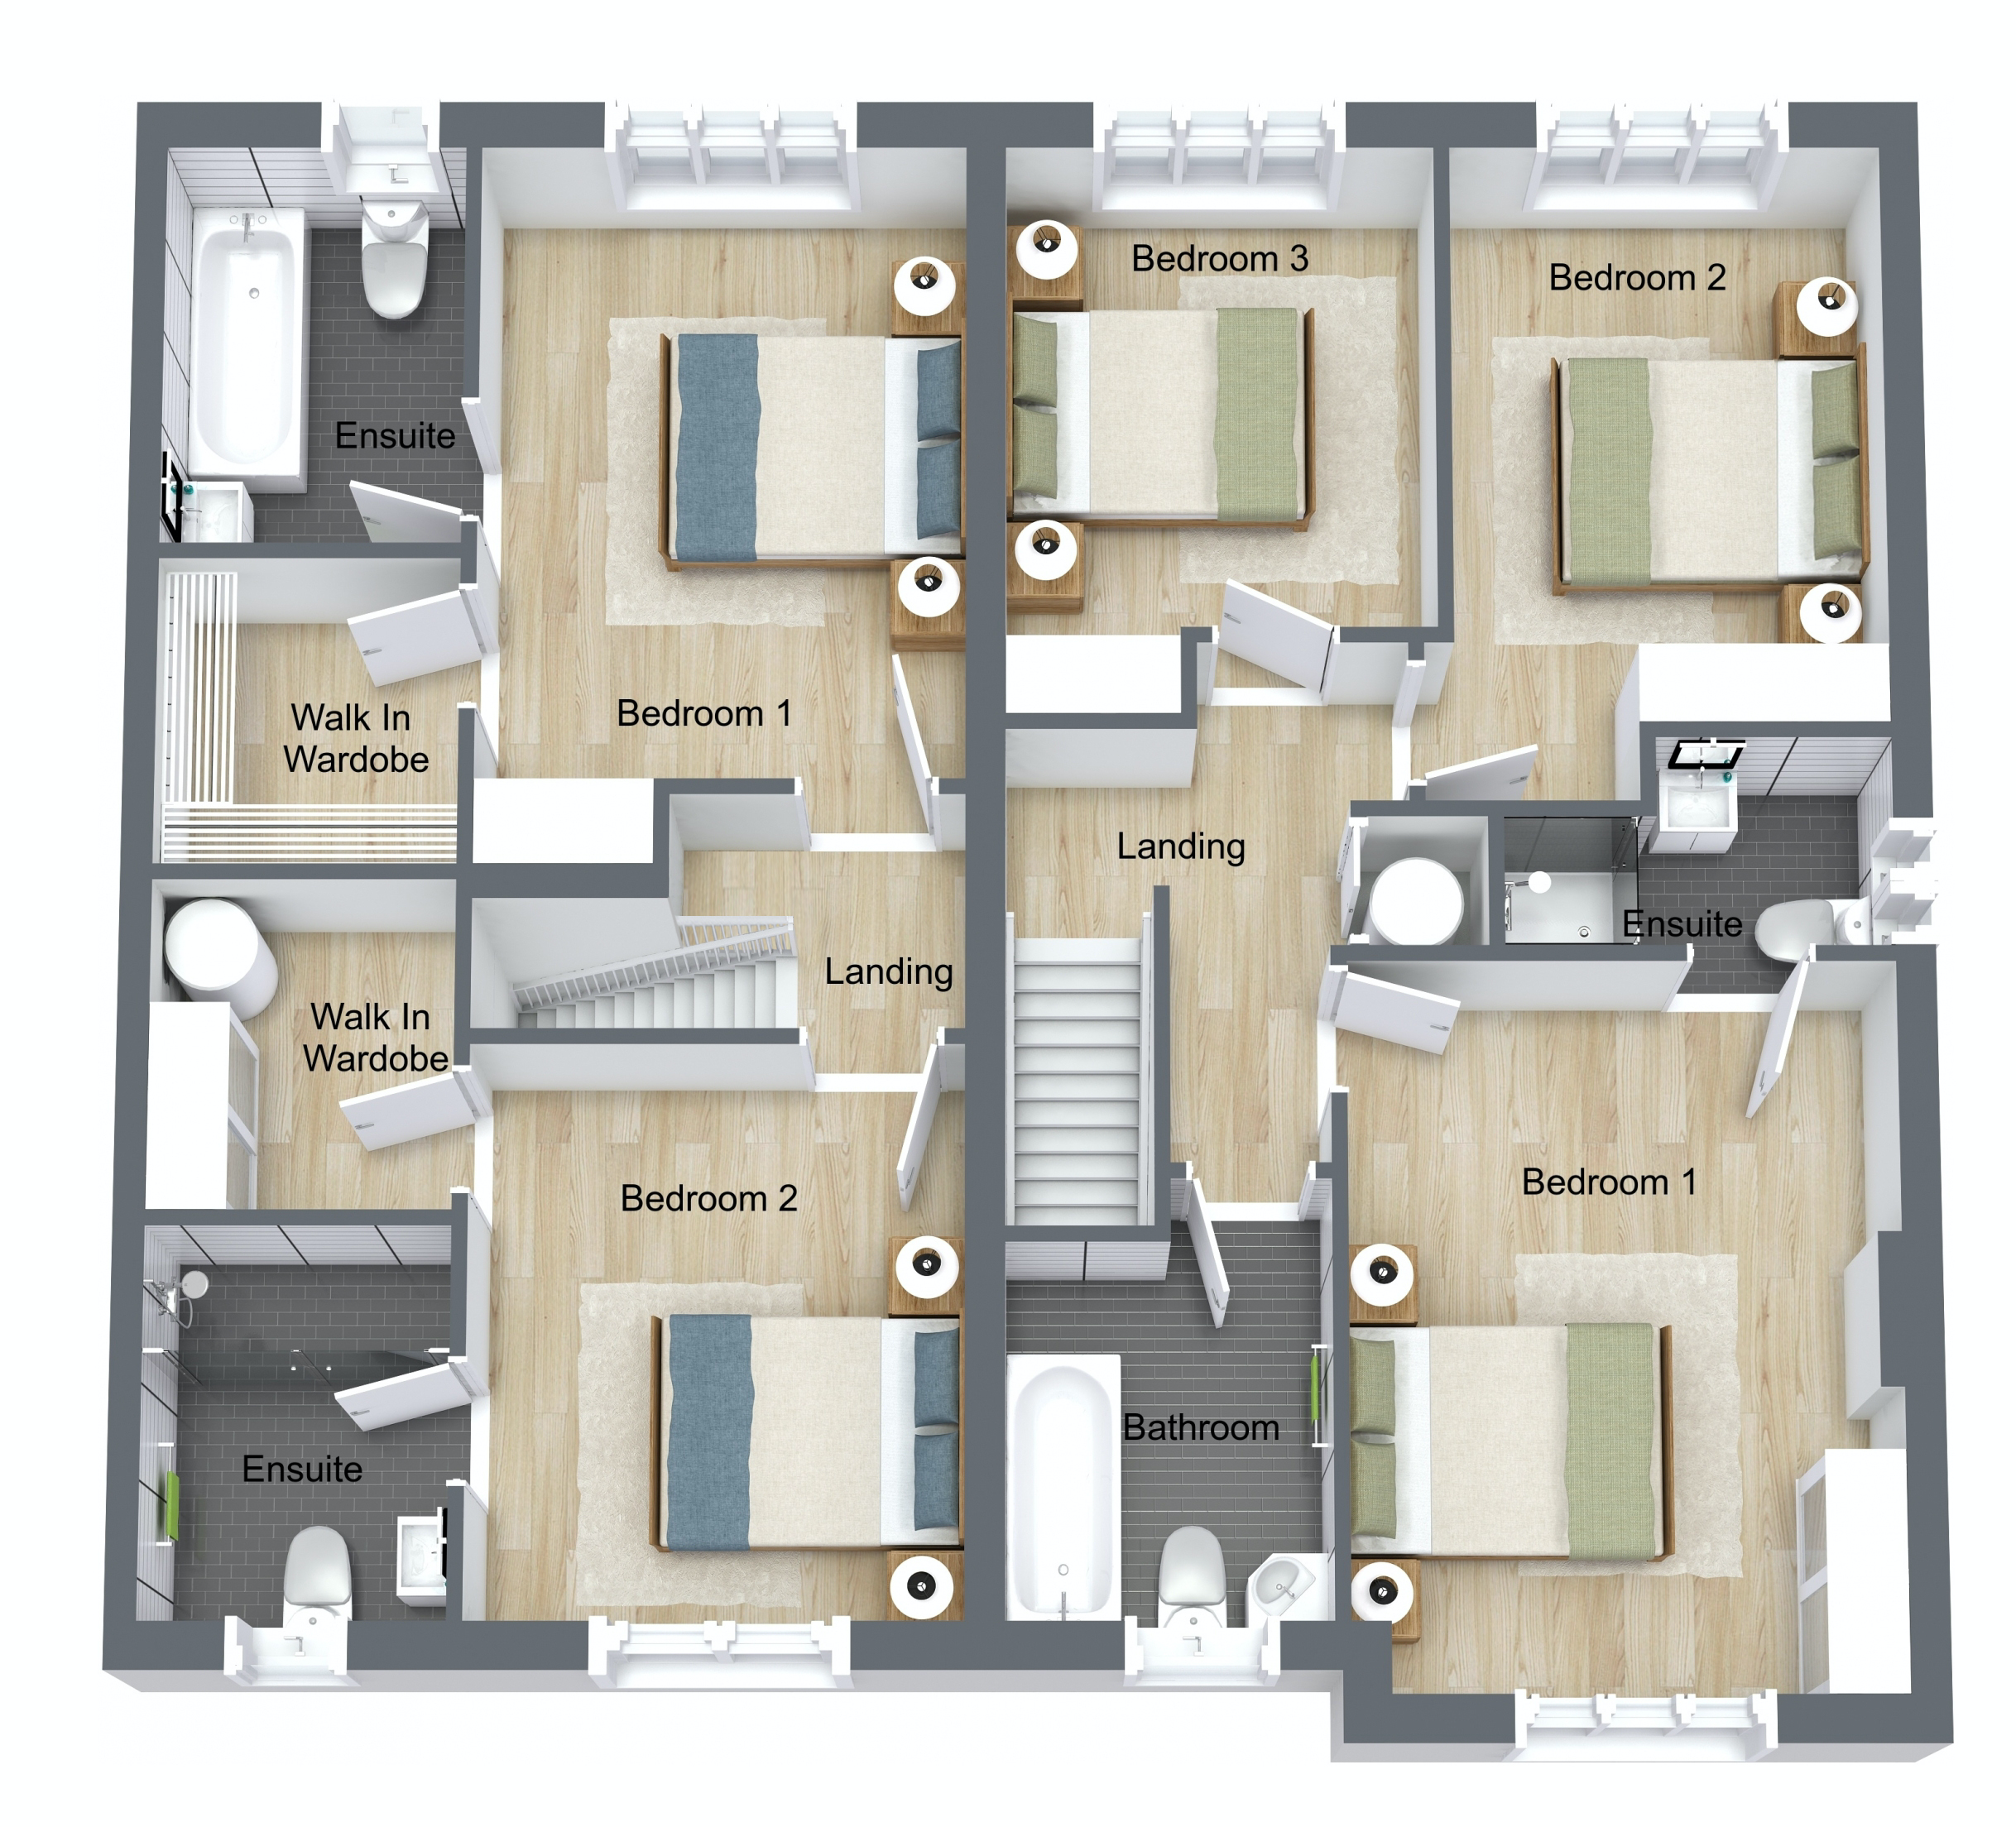 Luxery New 2 or 3 Bed Family Townhouses in Drogheda - Kestrel Manor